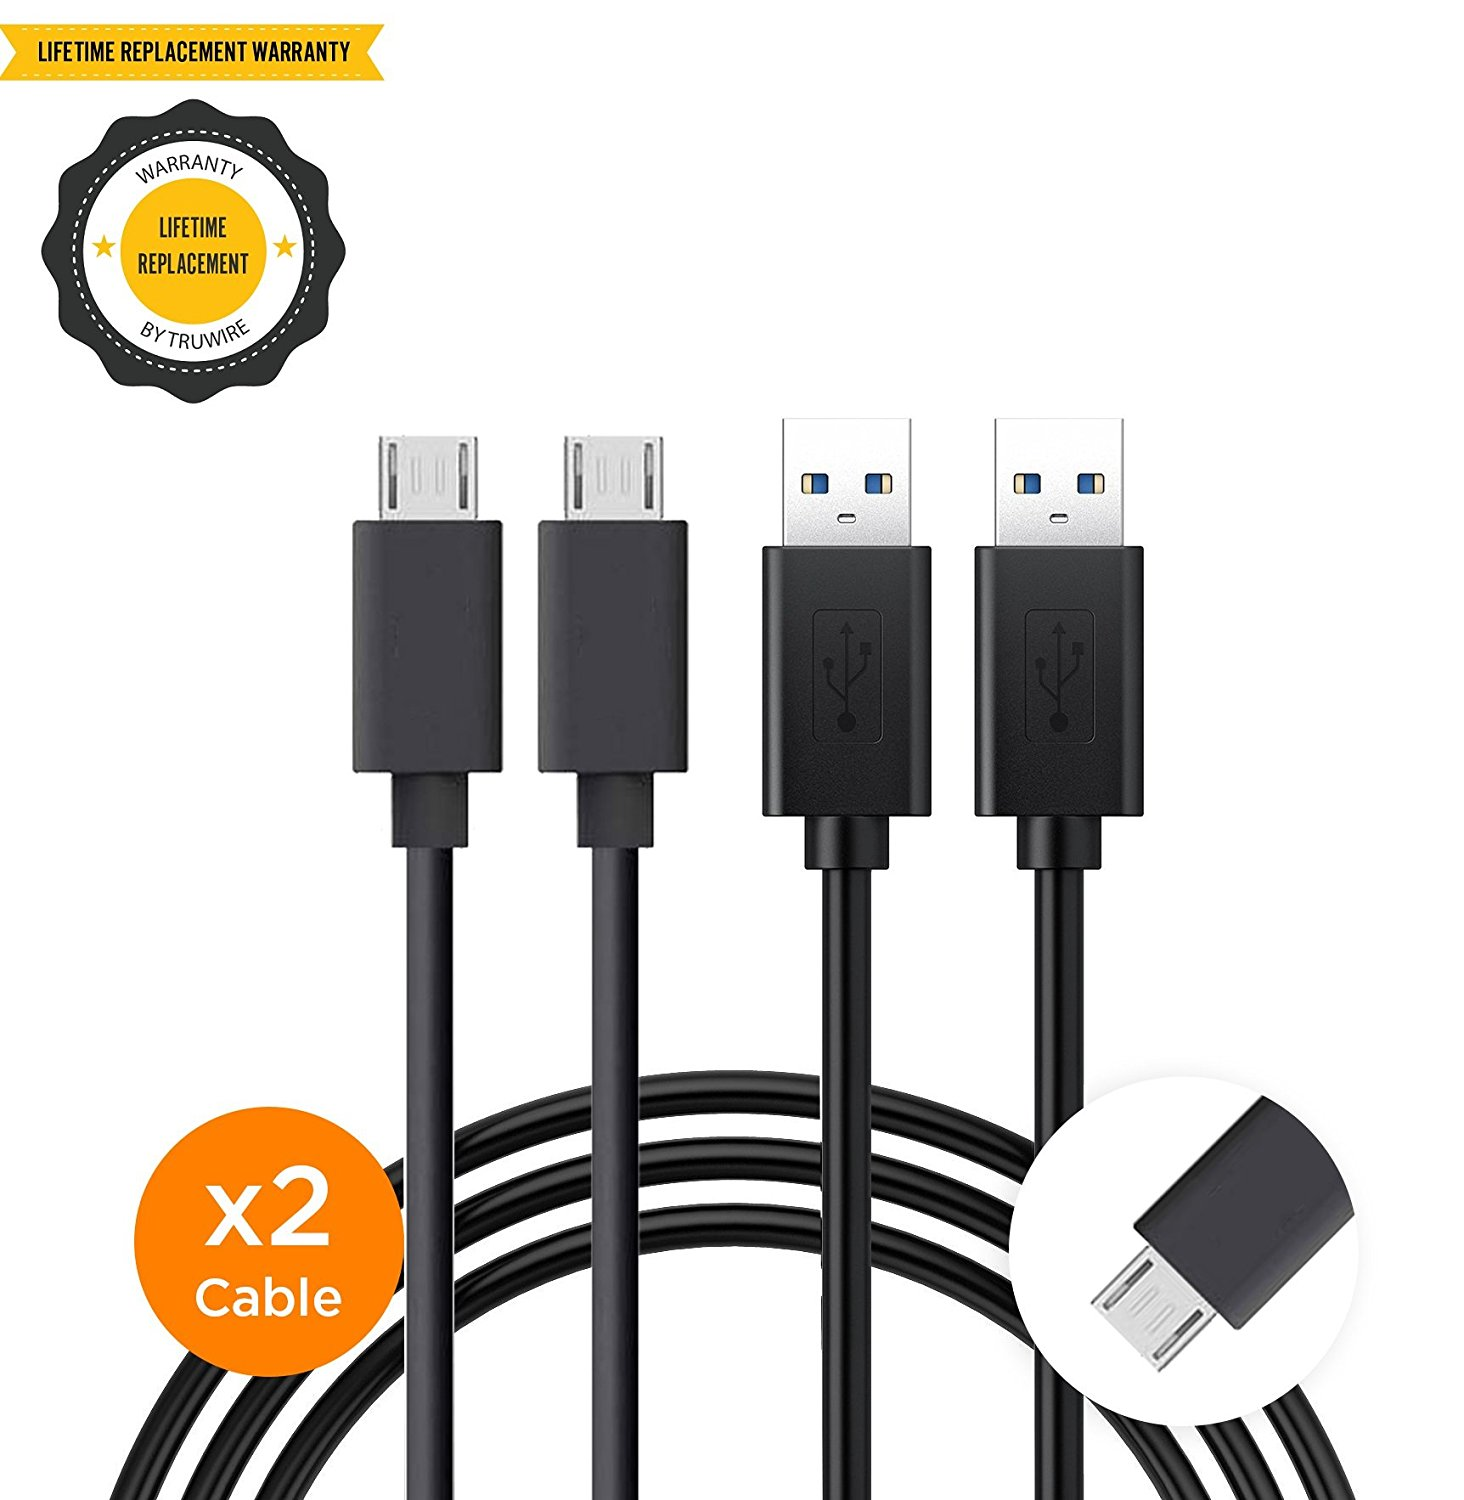 Kyocera Brigadier Charger Micro USB 2.0 Cables Micro USB Data Sync Charging Cable, Durable Braided Fast Charging Charger Cord by Truwire - {2 Cable} Black